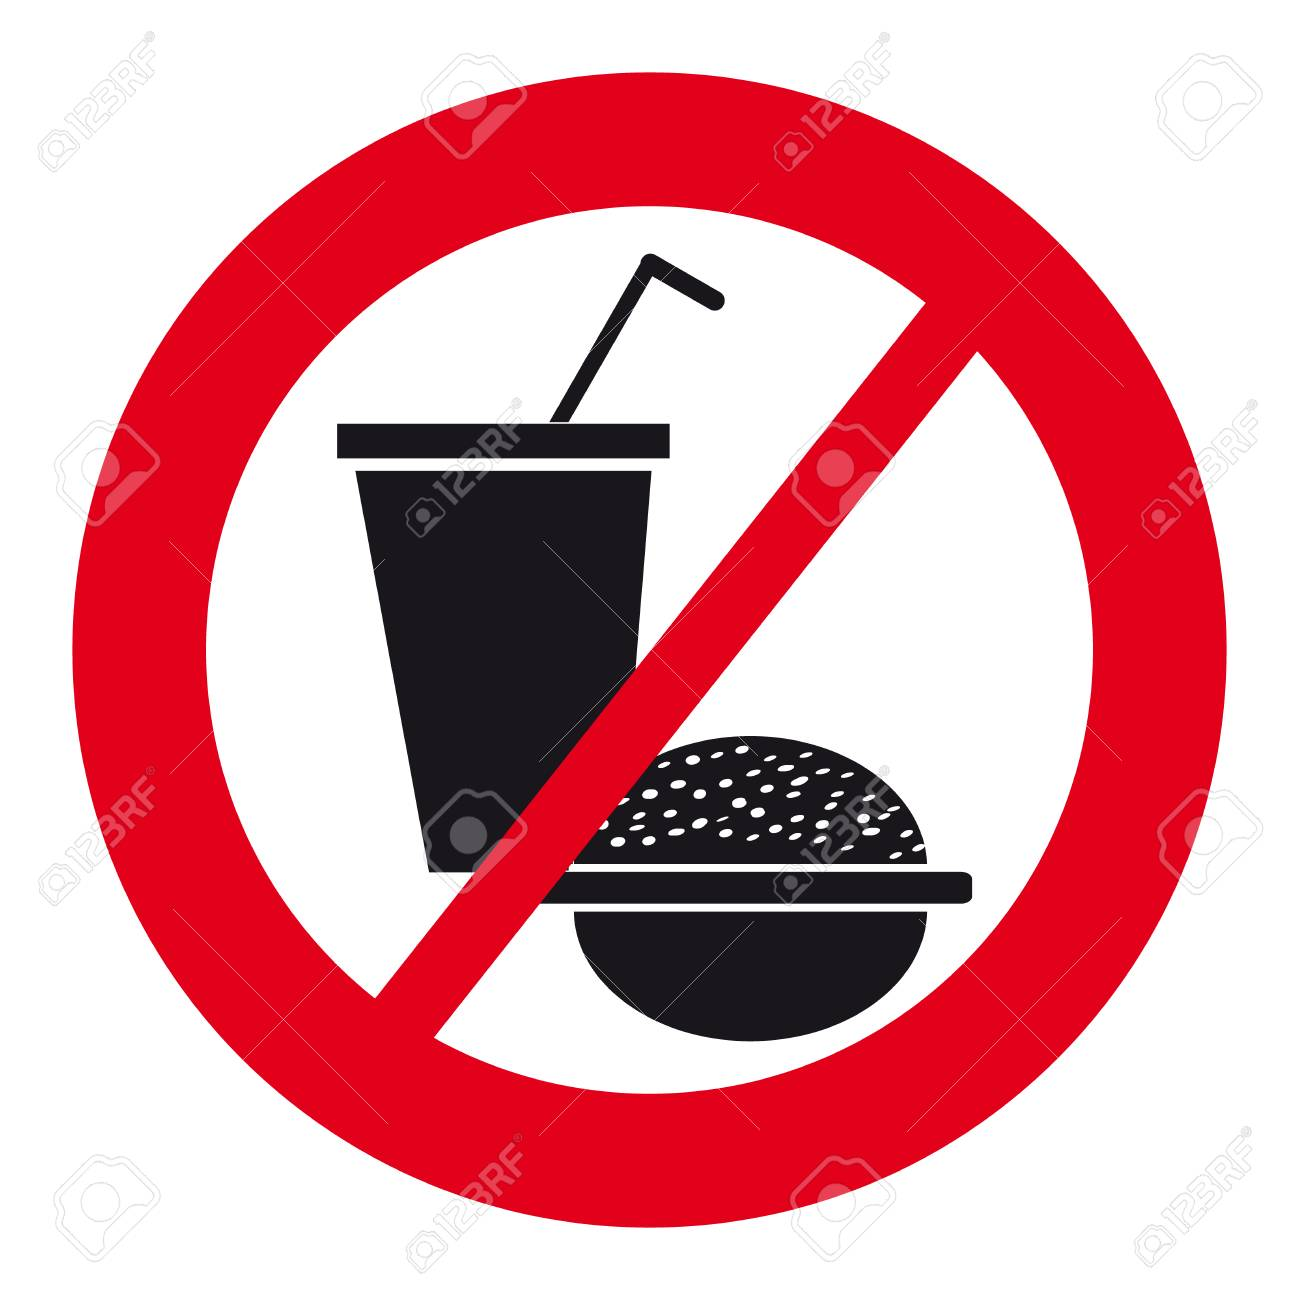 No food symbol choice image symbol and sign ideas no food symbol on white background vector illustration royalty no food symbol on white background vector biocorpaavc